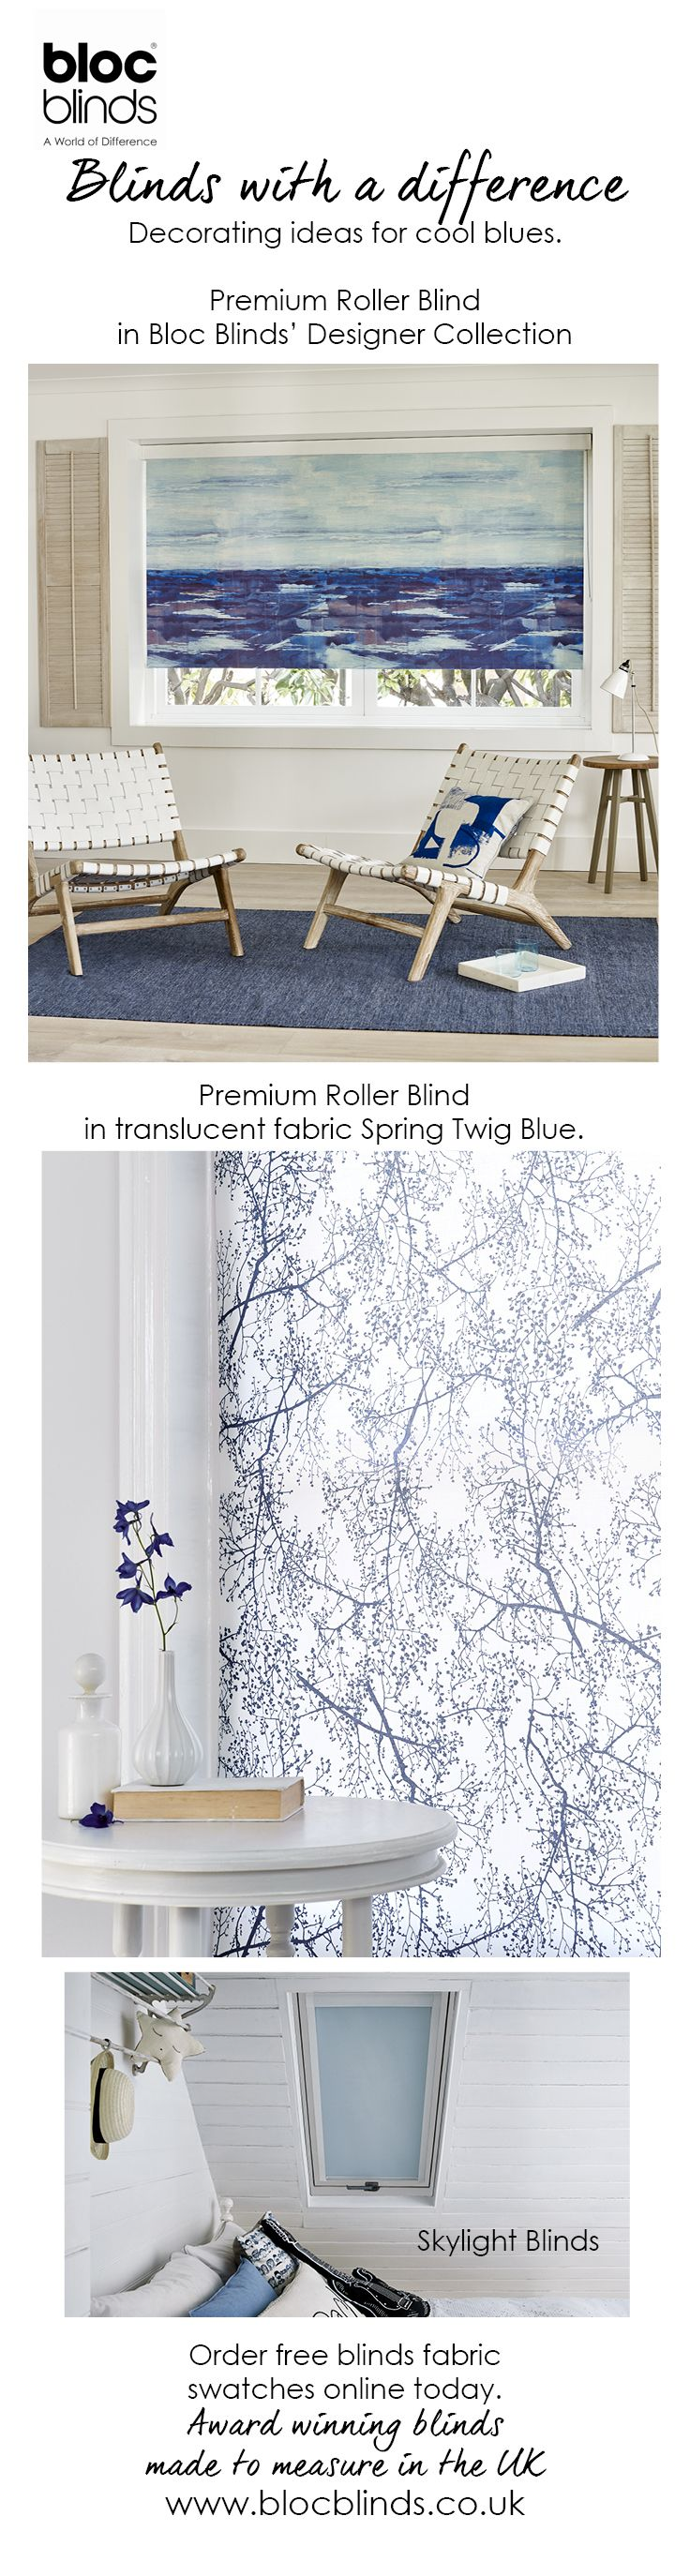 Blues are classic and fresh in any room setting.Order free fabric samples of blue roller blinds today from award winning Bloc Blinds.